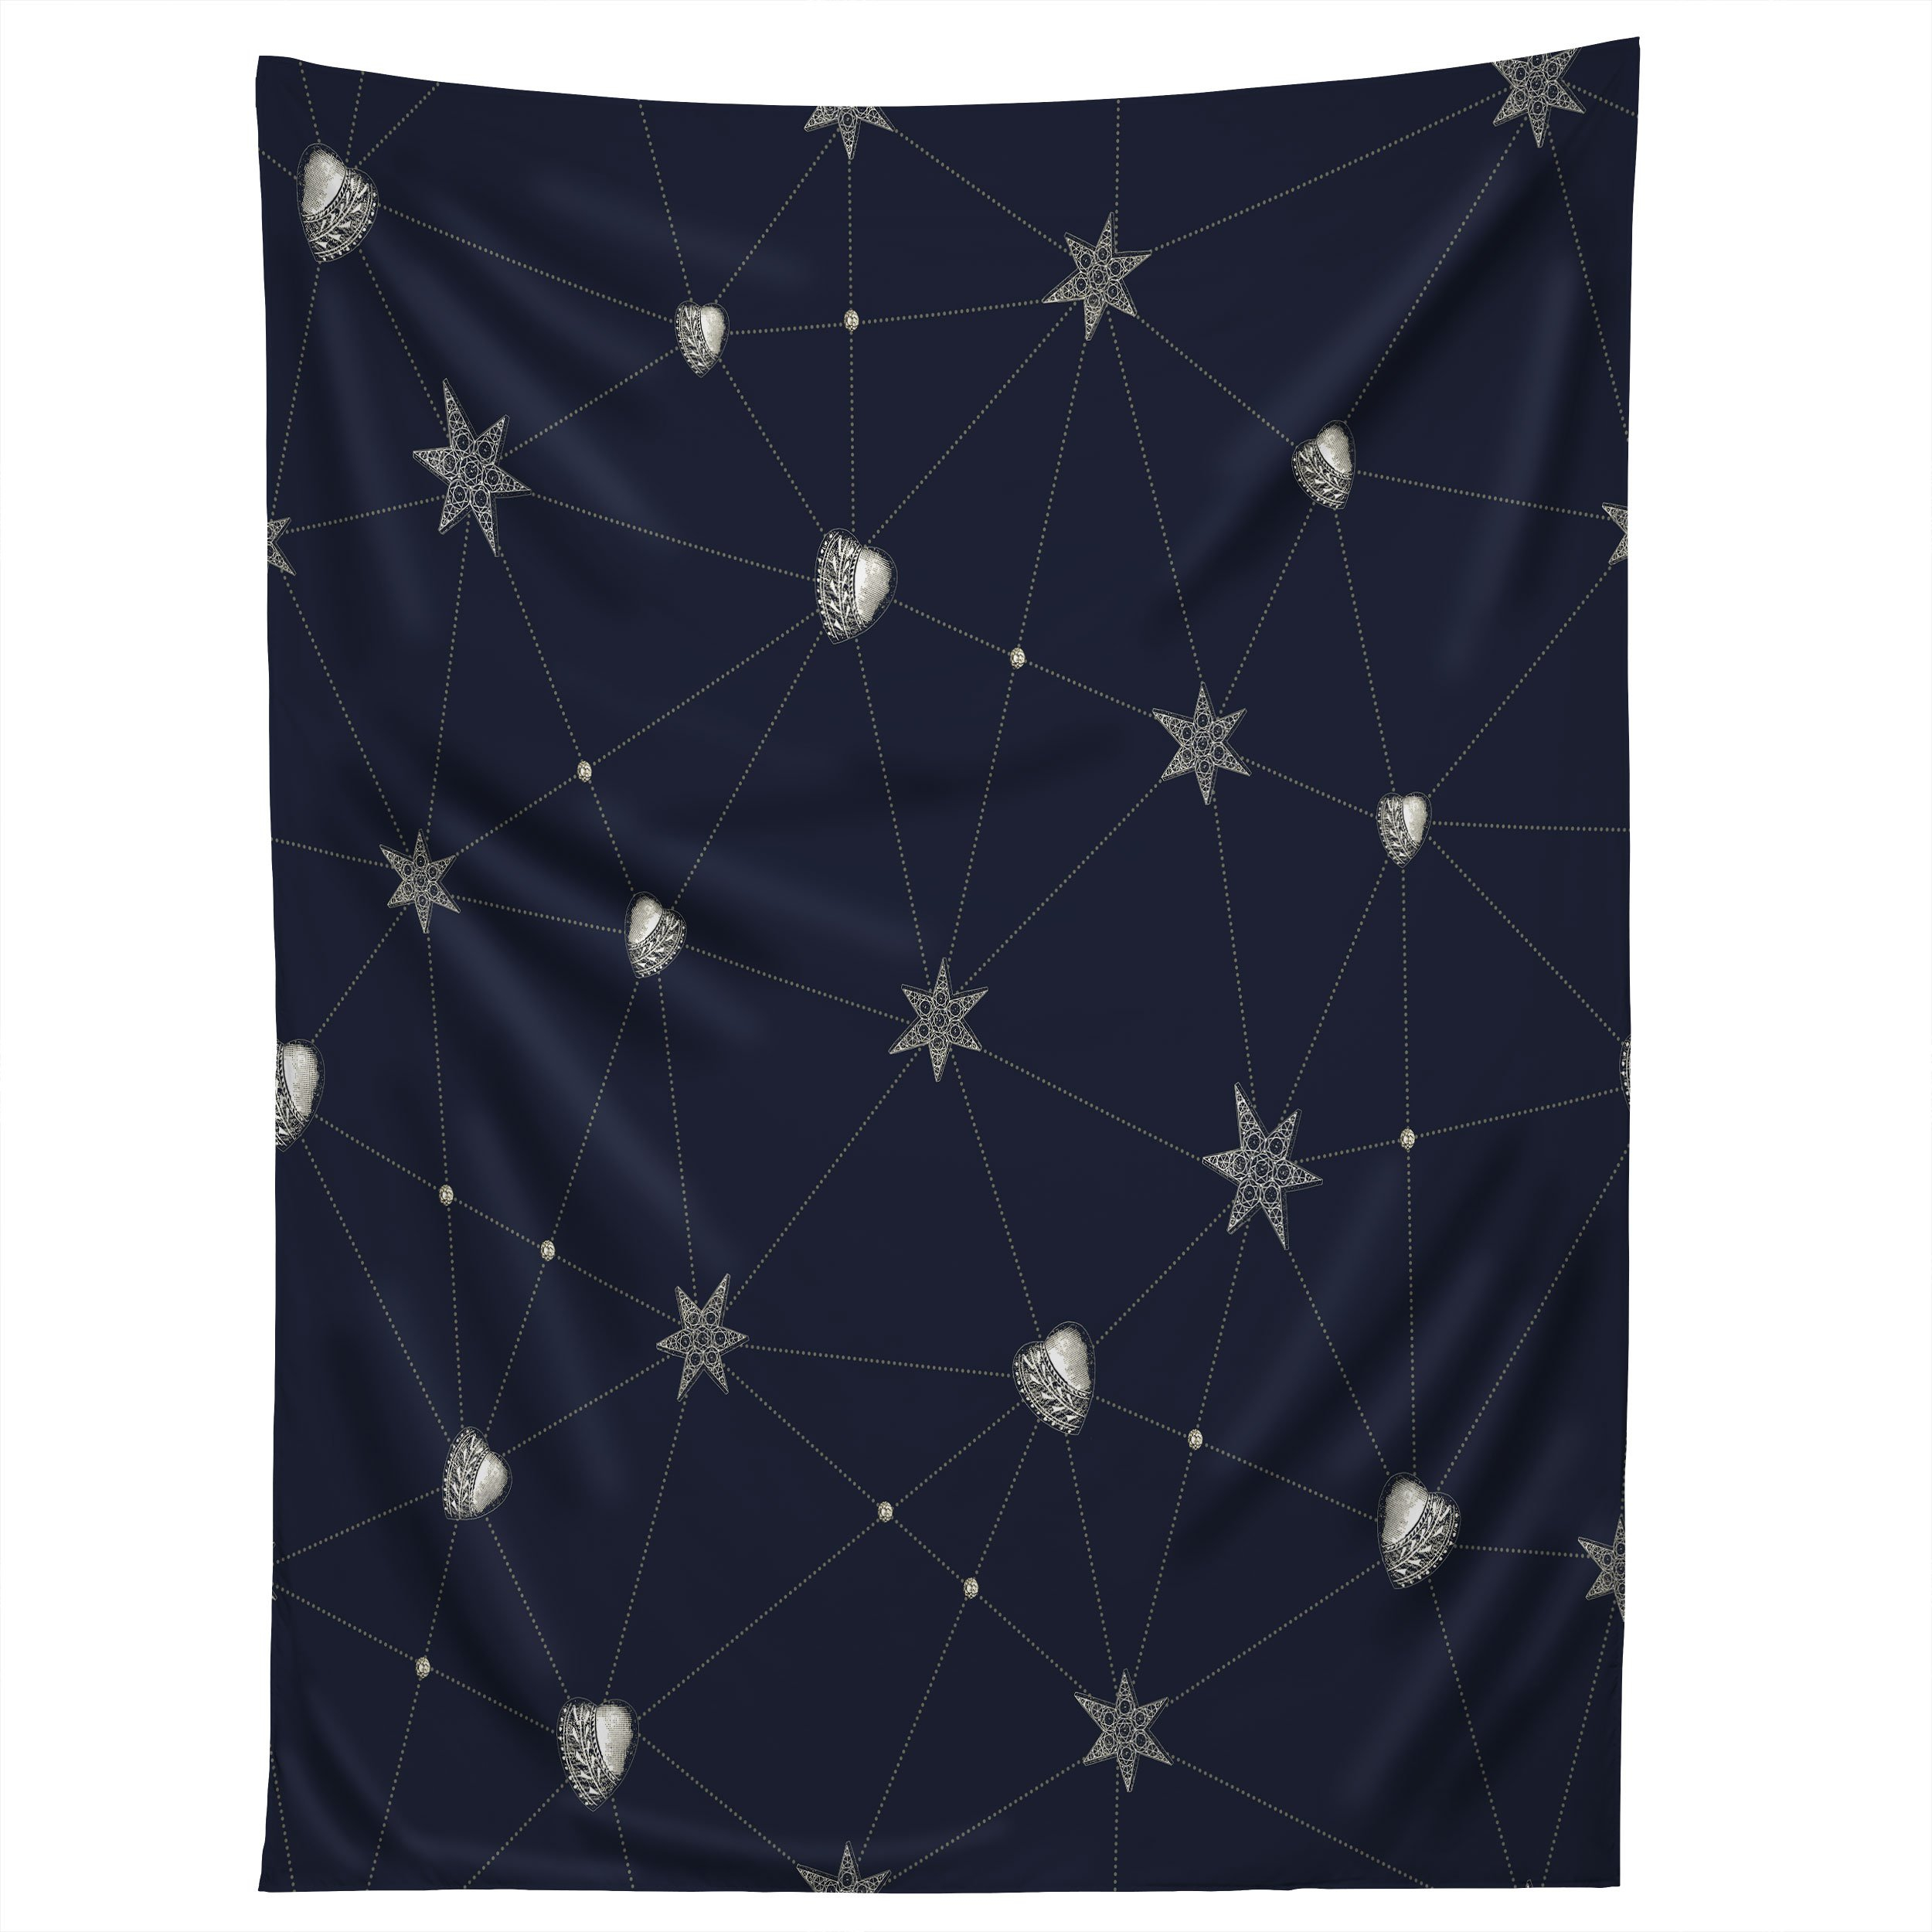 Image of Belle13 Love Constellation Tapestry